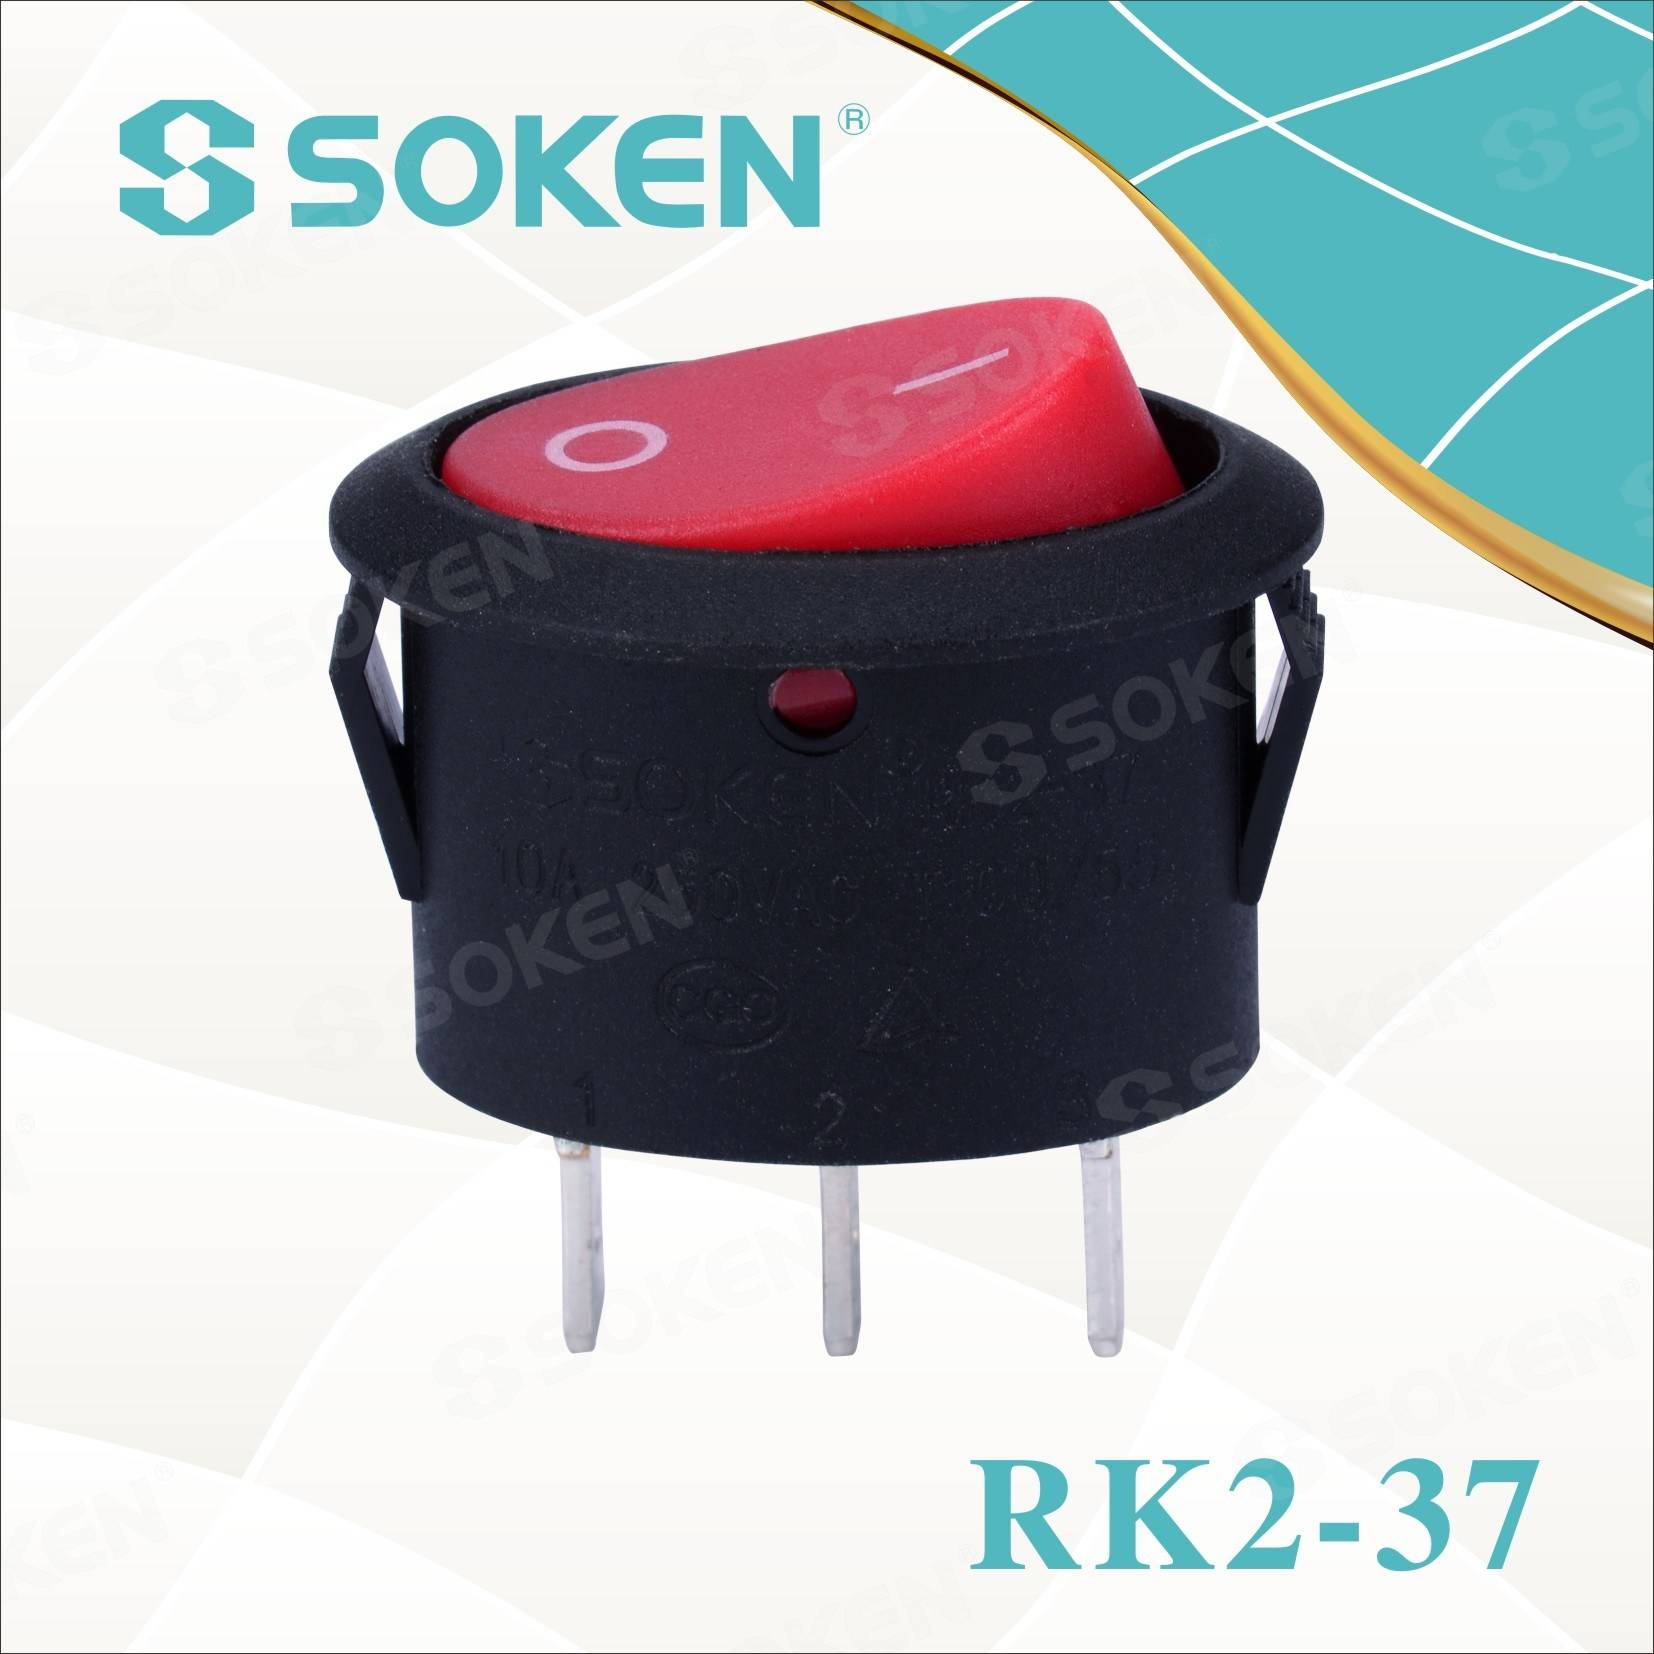 Oval Rocker Rk2-37A Switch